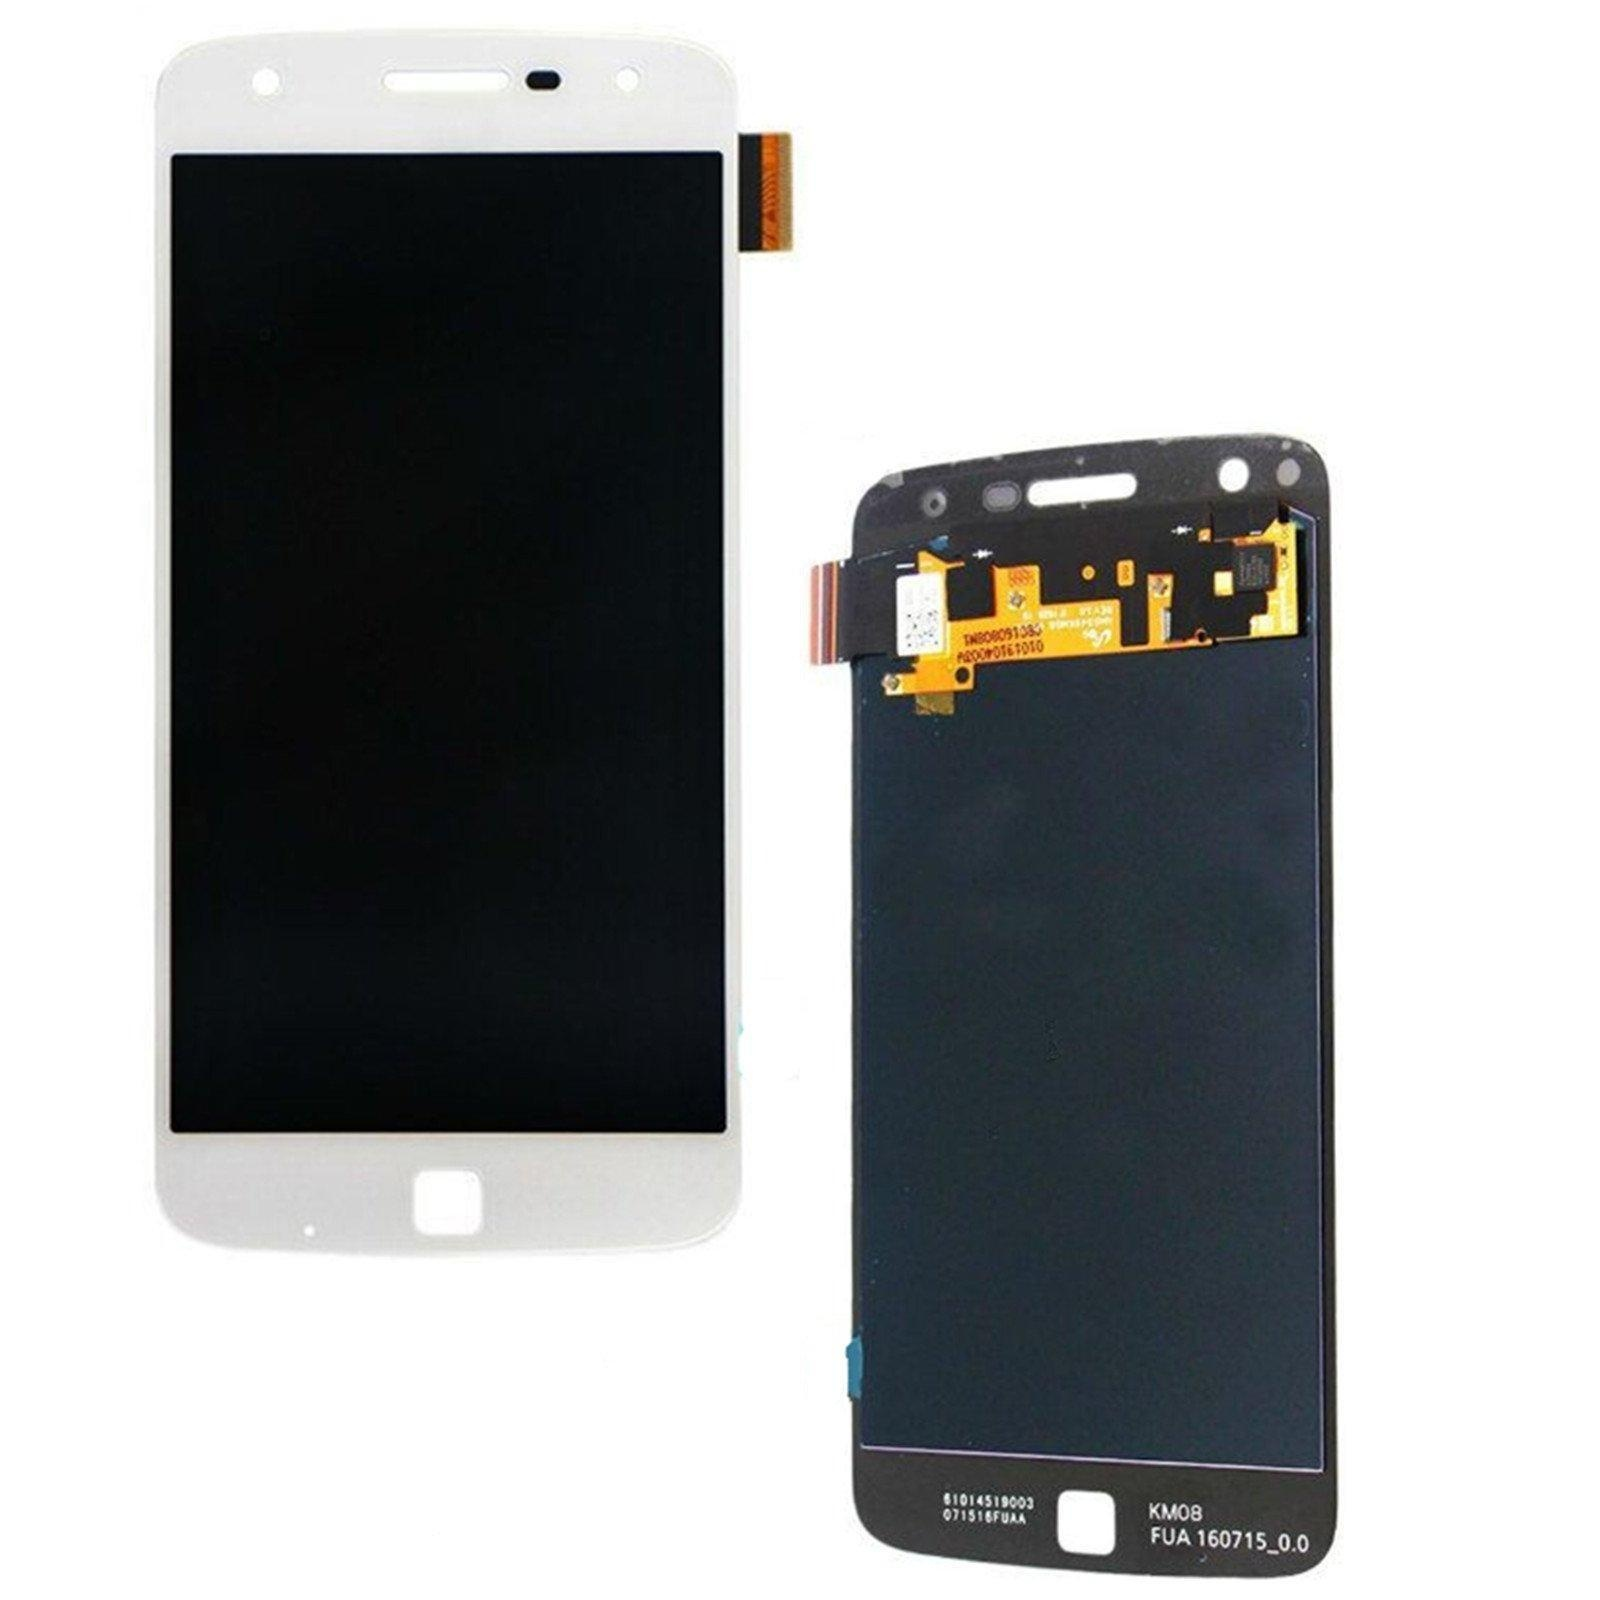 Motorola Moto Z Play XT1635 LCD Screen and Digitizer Touch Screen Assembly  Replacement - White